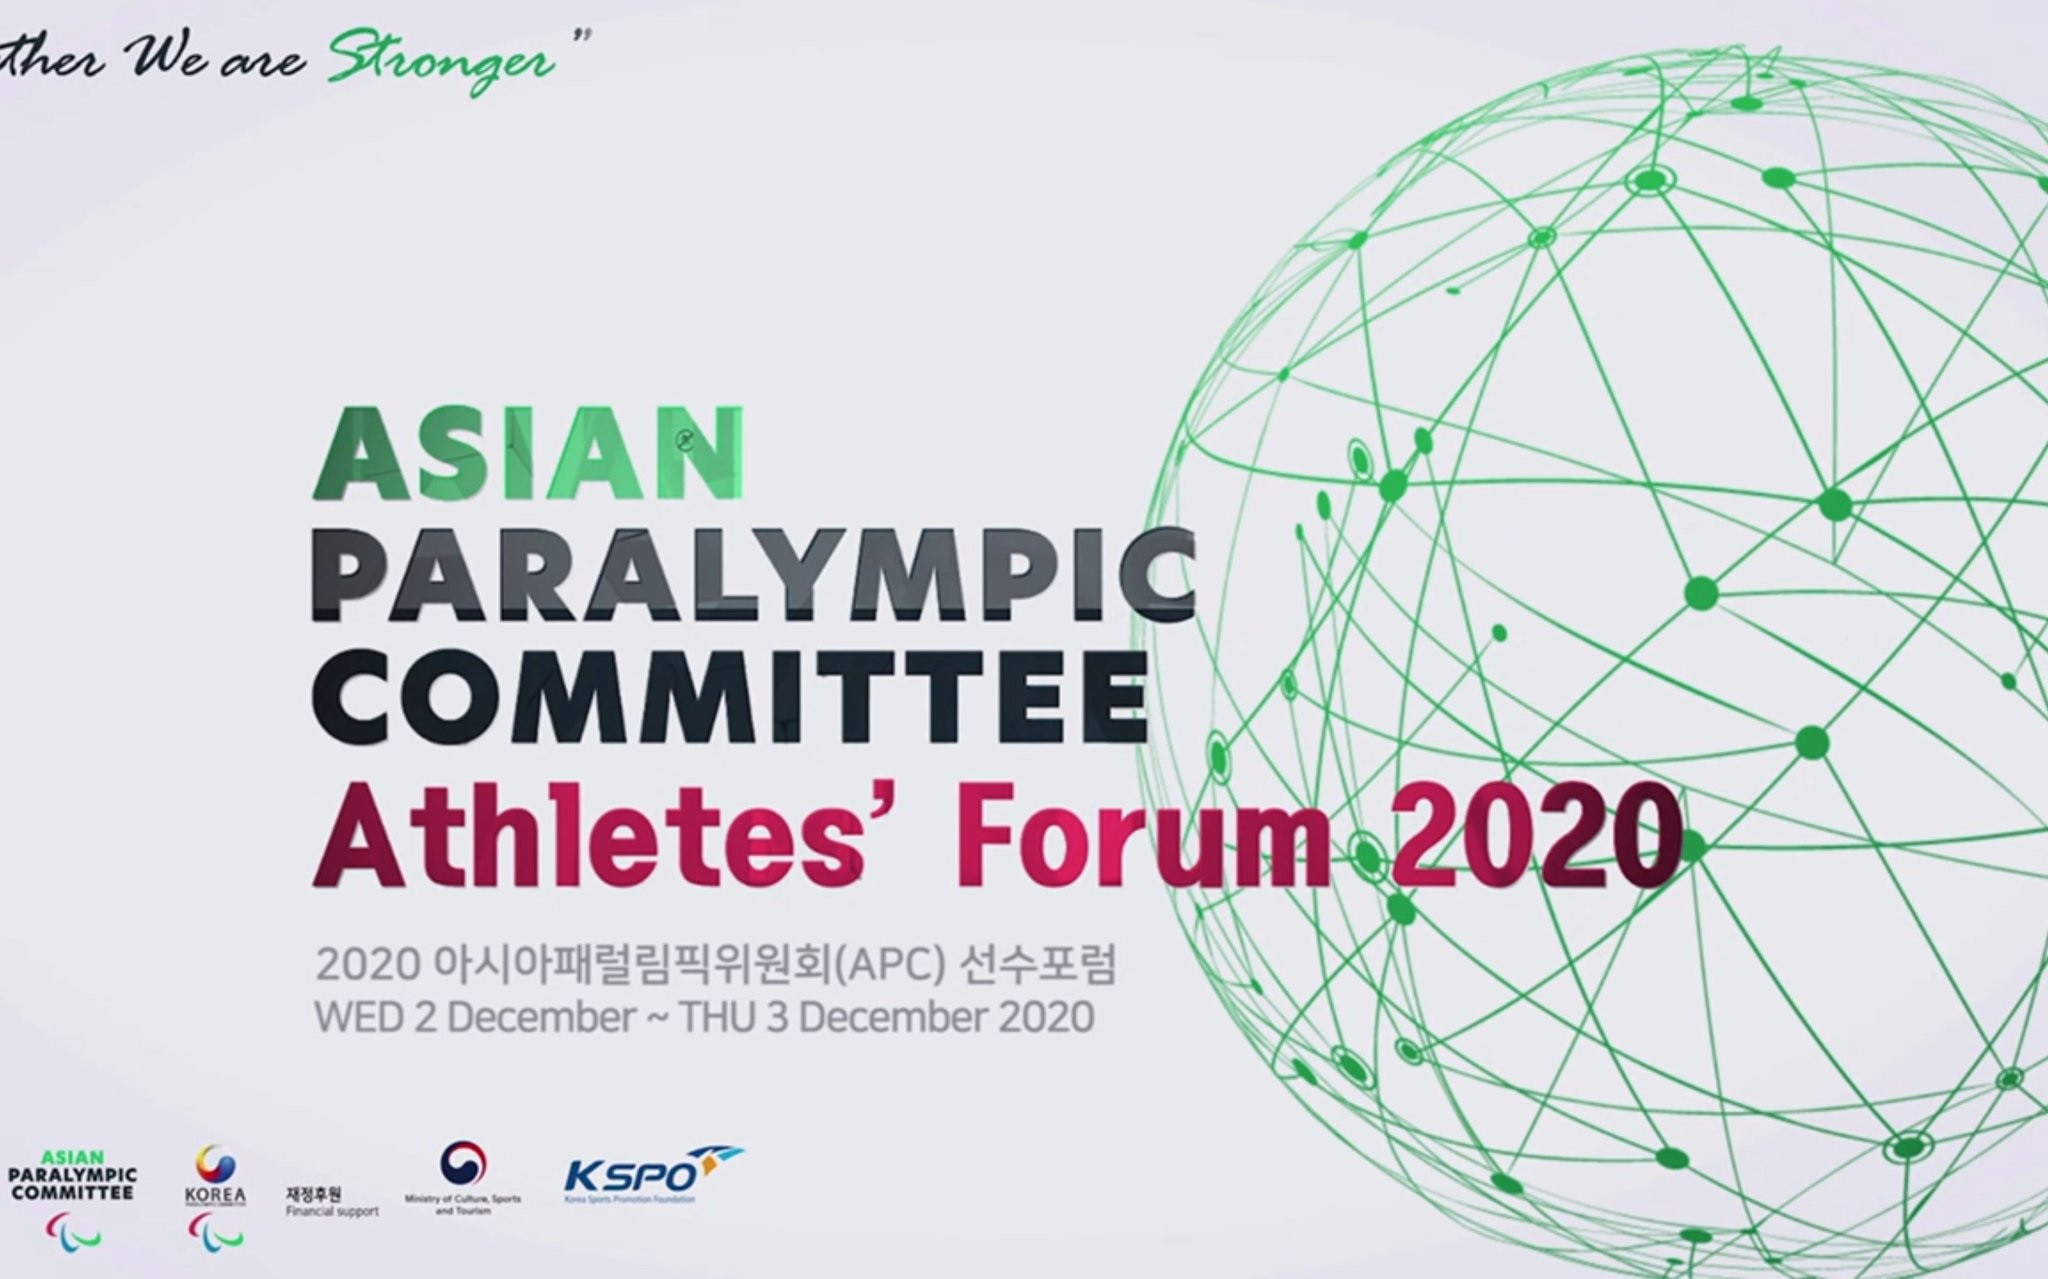 Future of Paralympic Movement discussed at inaugural Asian Paralympic Committee Athletes' Forum